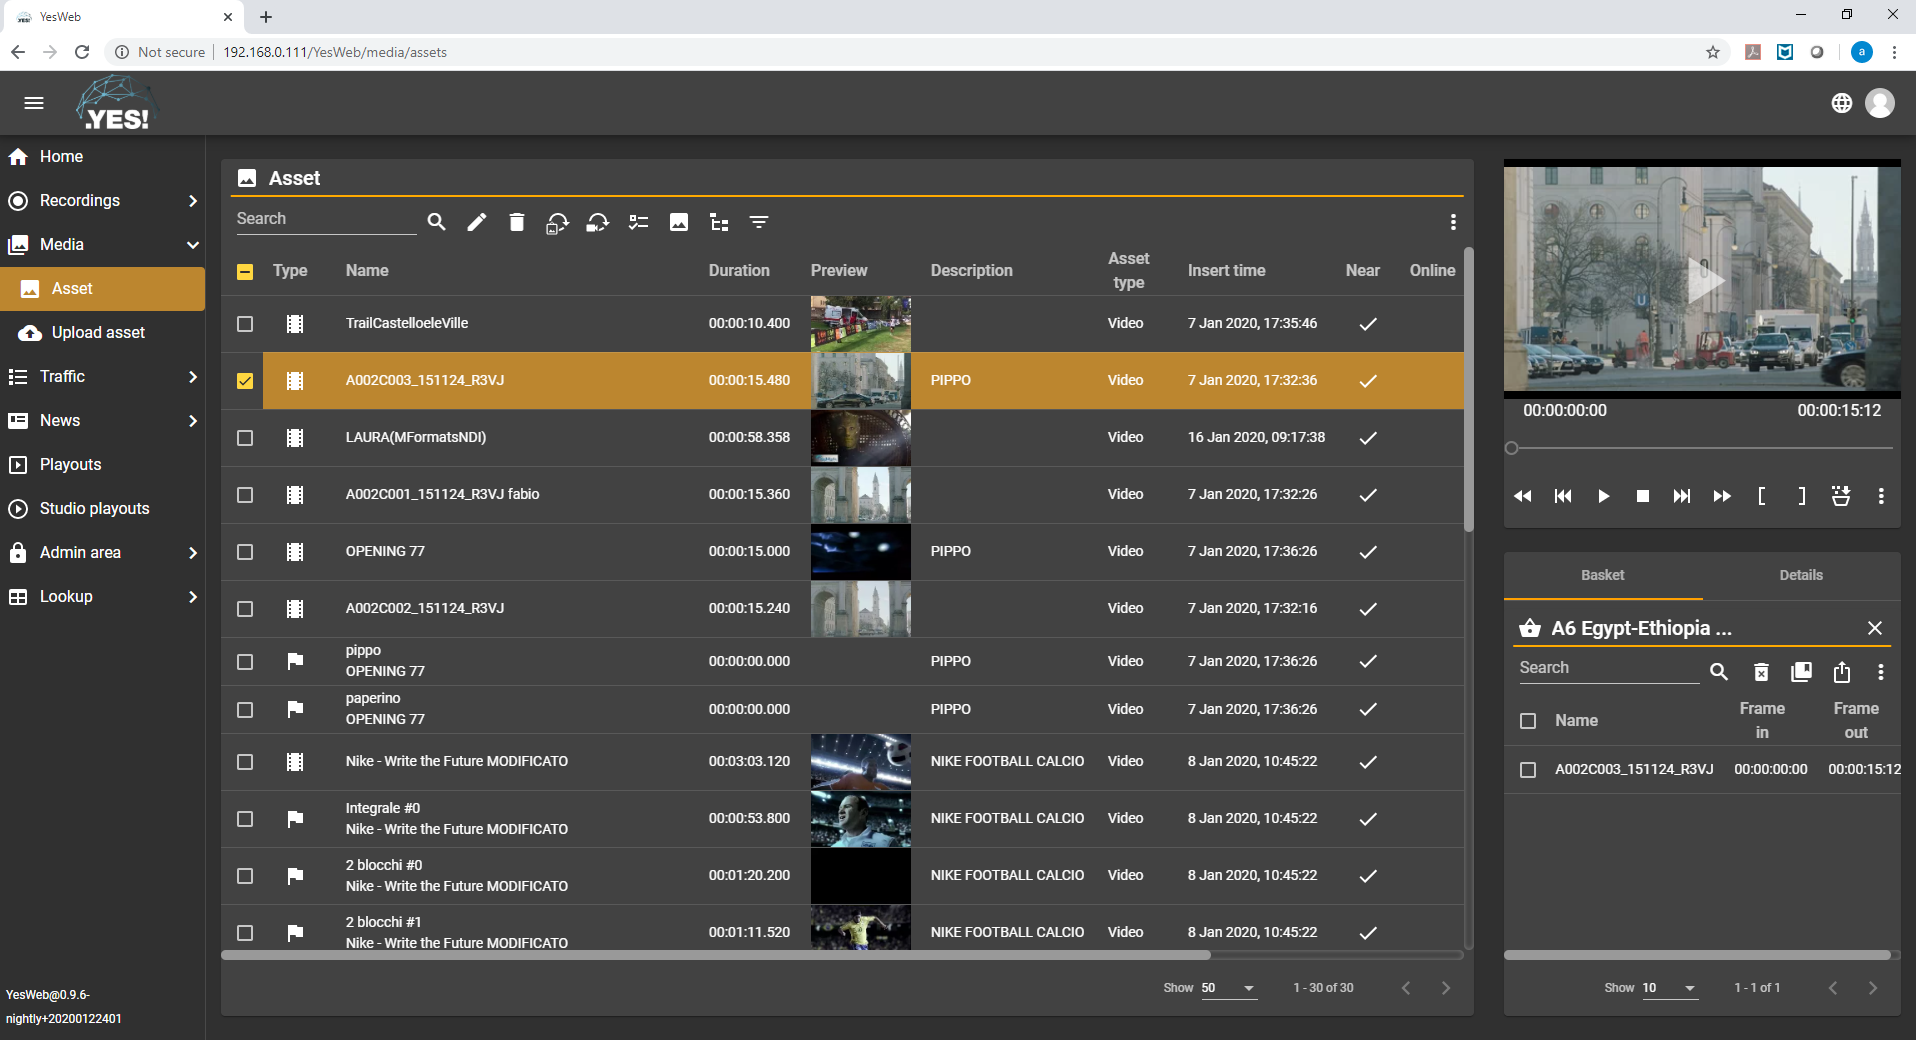 .YES!MAM - Asset Archive user interface